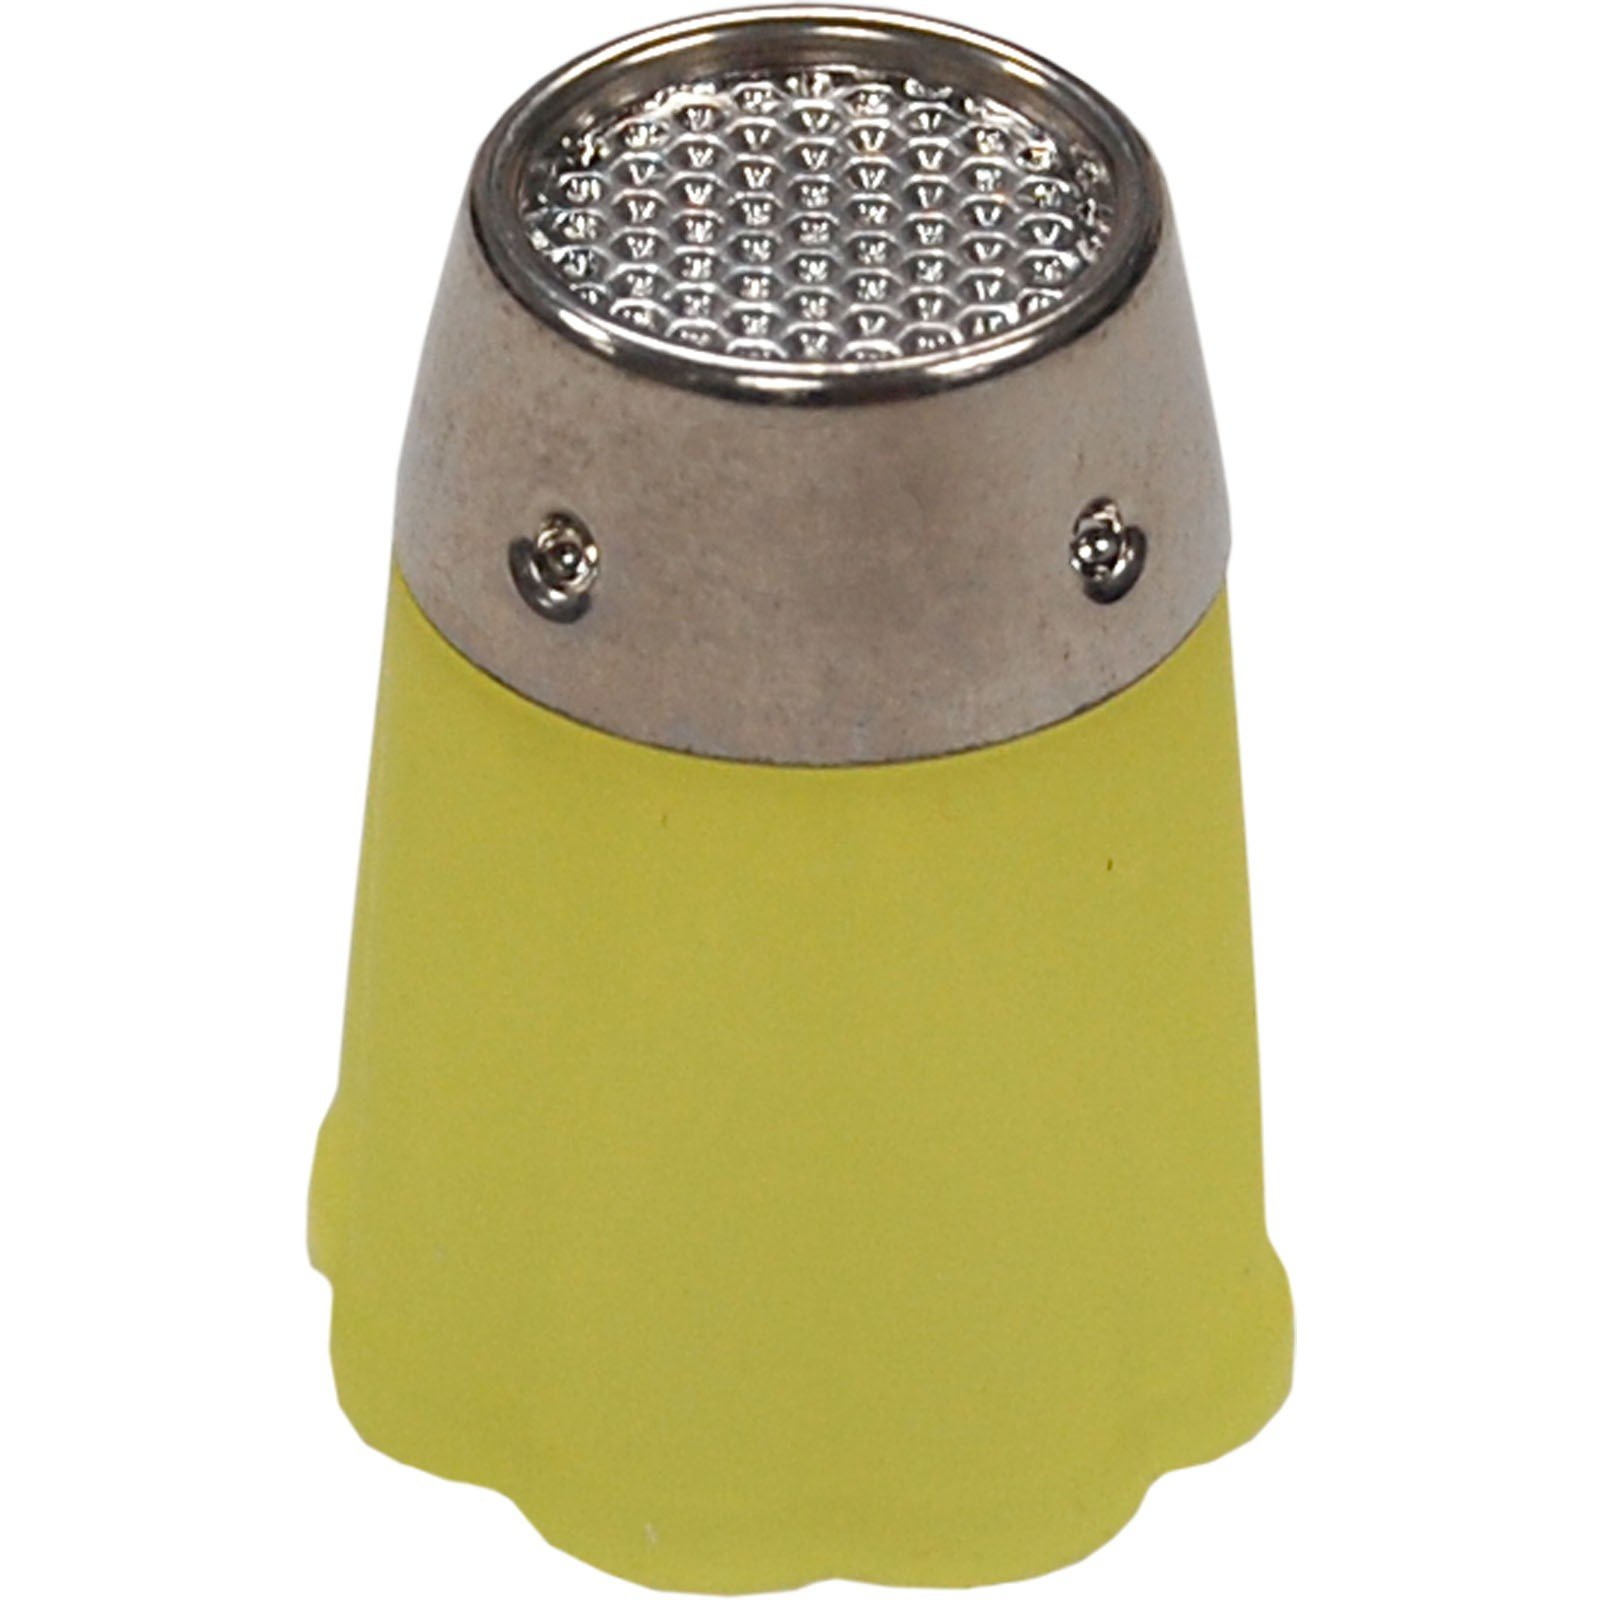 Protect and Grip Thimble by Clover - Large - Yellow